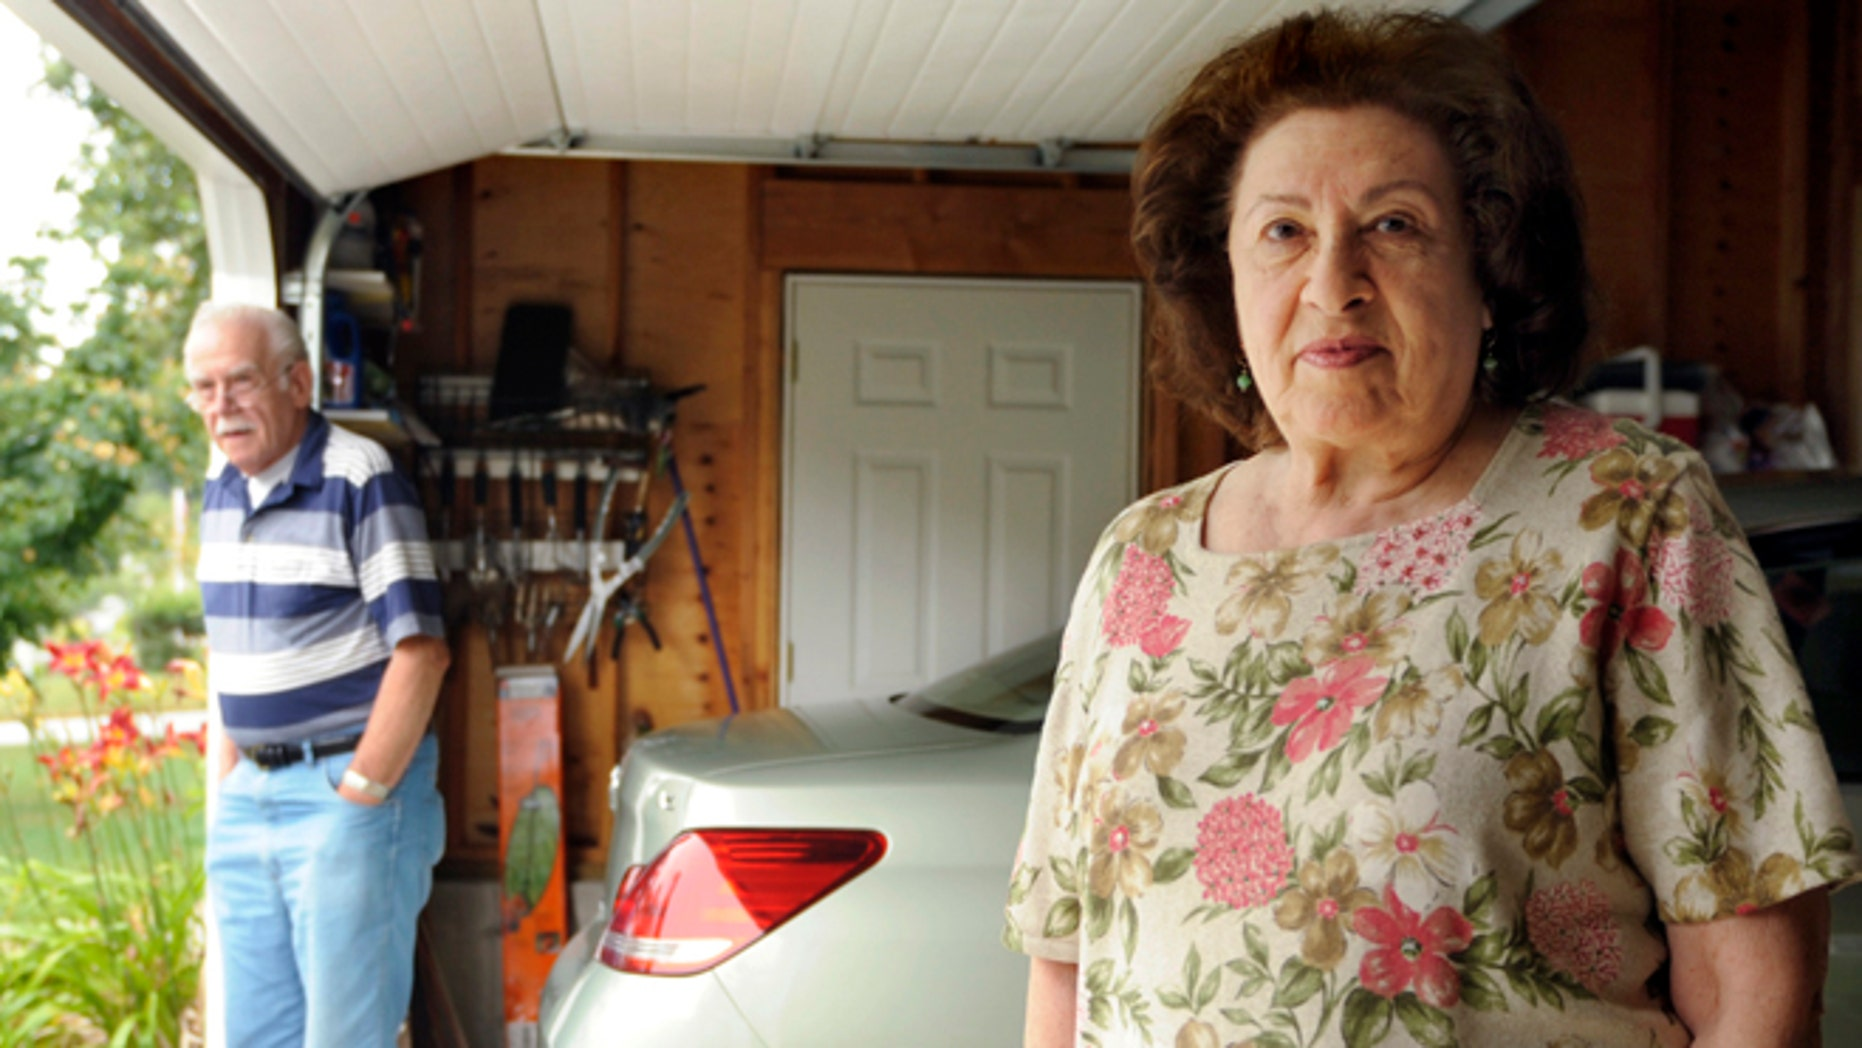 In this July 20, 2012 photo, Al, left, and Sondra Tuchman stand in the garage of their Montville, Conn., home. Sondra Tuchman said her garage-door opener was no longer opening and closing the door, and a representative of the door company told her they had received similar complaints from customers in nearby towns. The U.S. Navy said Monday, July 23, 2012, that a new radio system at the Naval Submarine Base in Groton may be interfering with the garage-door openers. (AP Photo/Sean D. Elliot, The Day)  MANDATORY CREDIT: SEAN D. ELLIOT/THE DAY